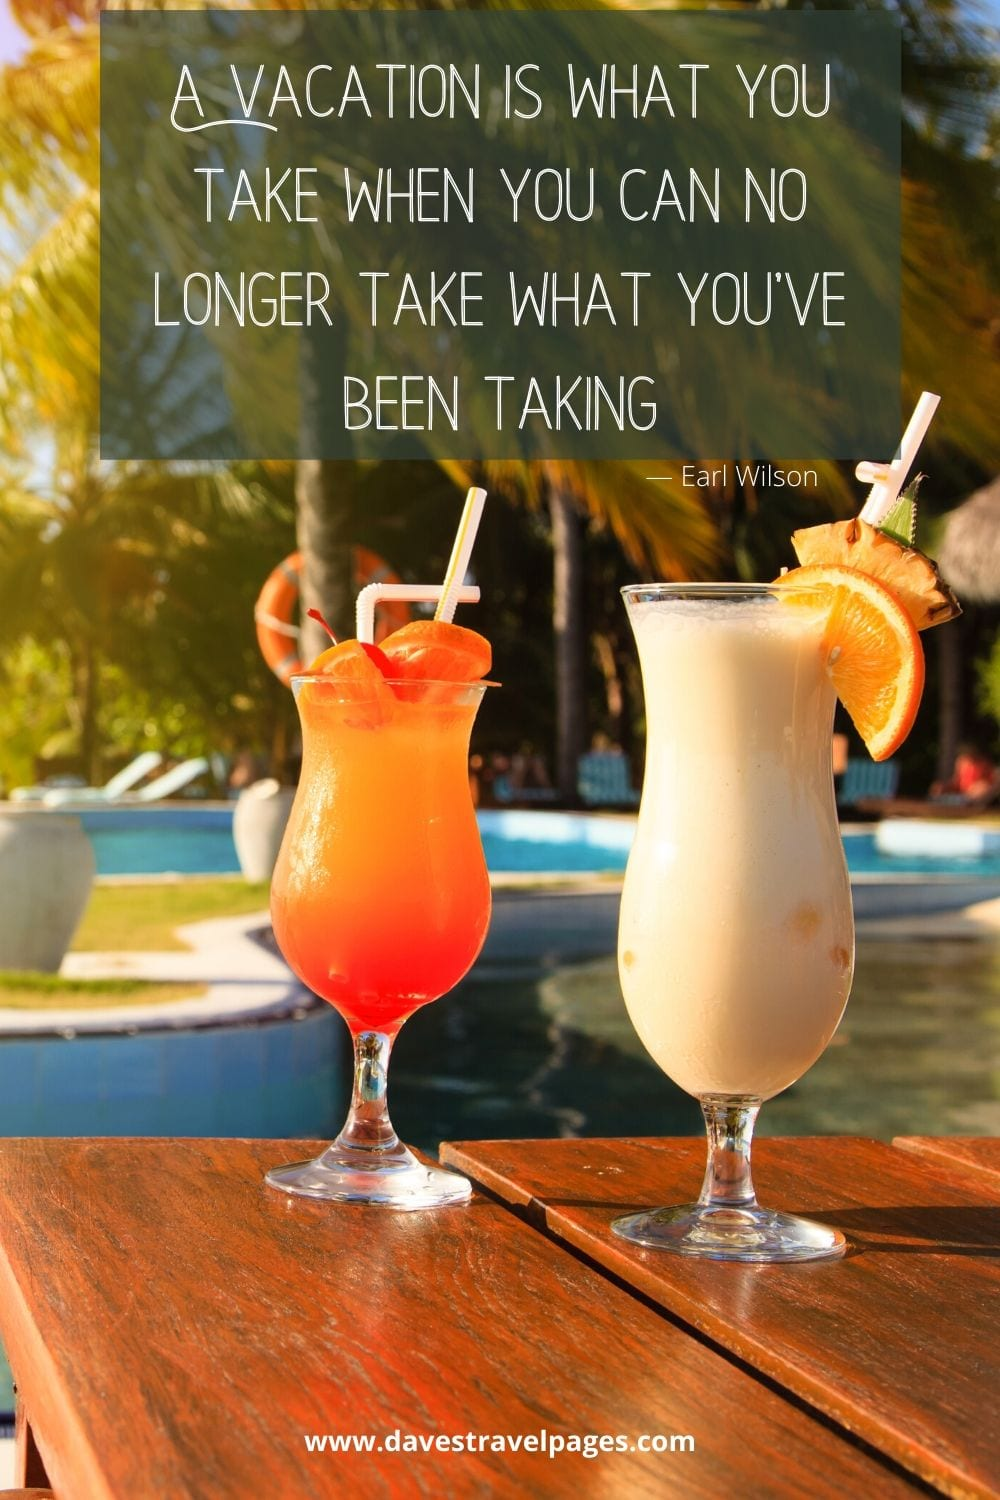 """Best quotes about vacations: """"A vacation is what you take when you can no longer take what you've been taking."""" — Earl Wilson"""